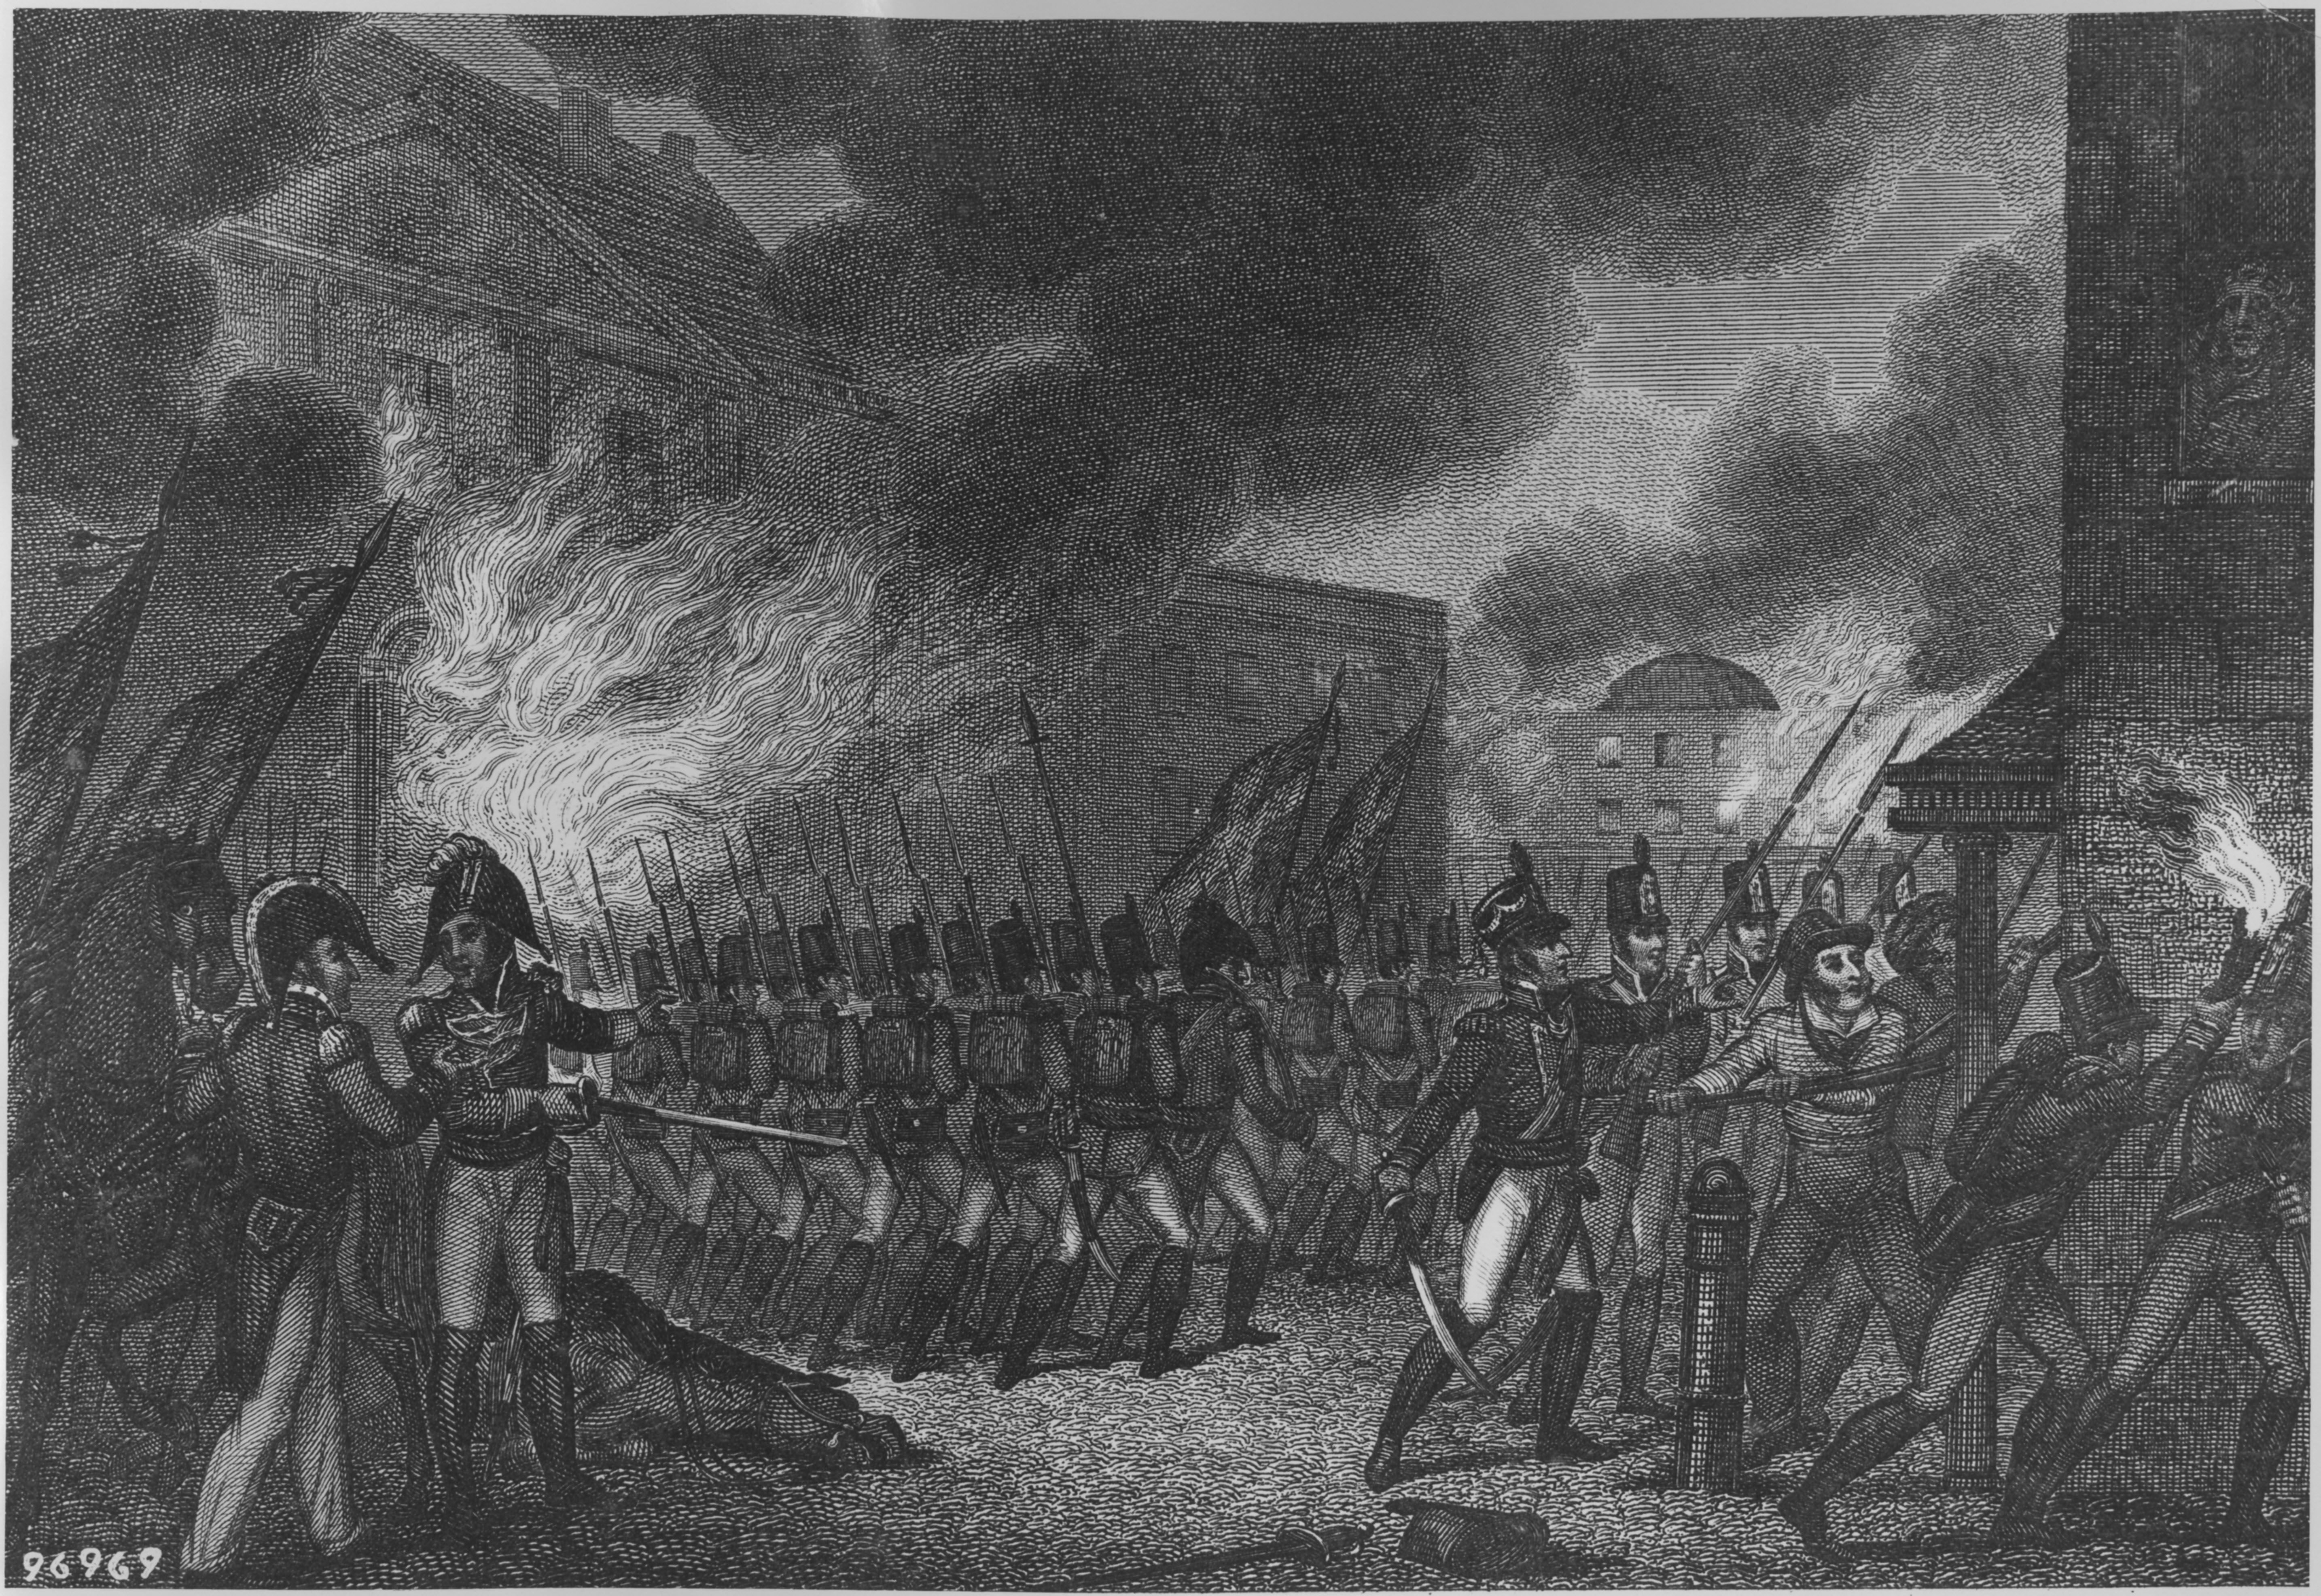 The Burning Of Washington War Of 1812 American Military History Today In History